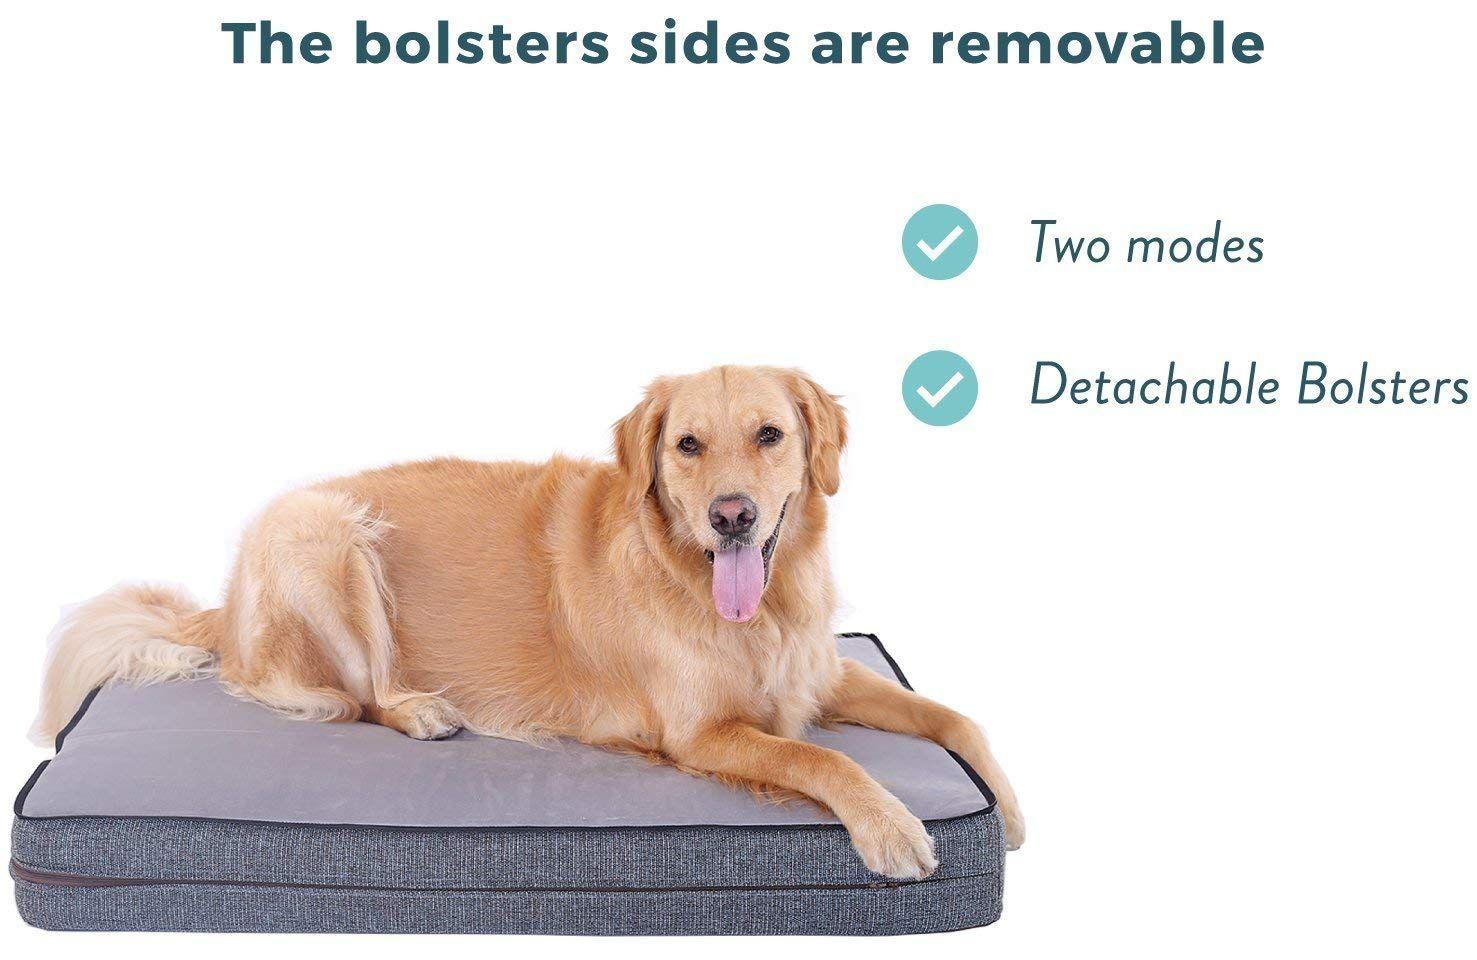 Dogs Also Need To Sleep Every Day Like People You Yourself Will Sleep In The Soft Bed And Think Your Dog Will Sleep On The Floor Cool Dog Beds Dog